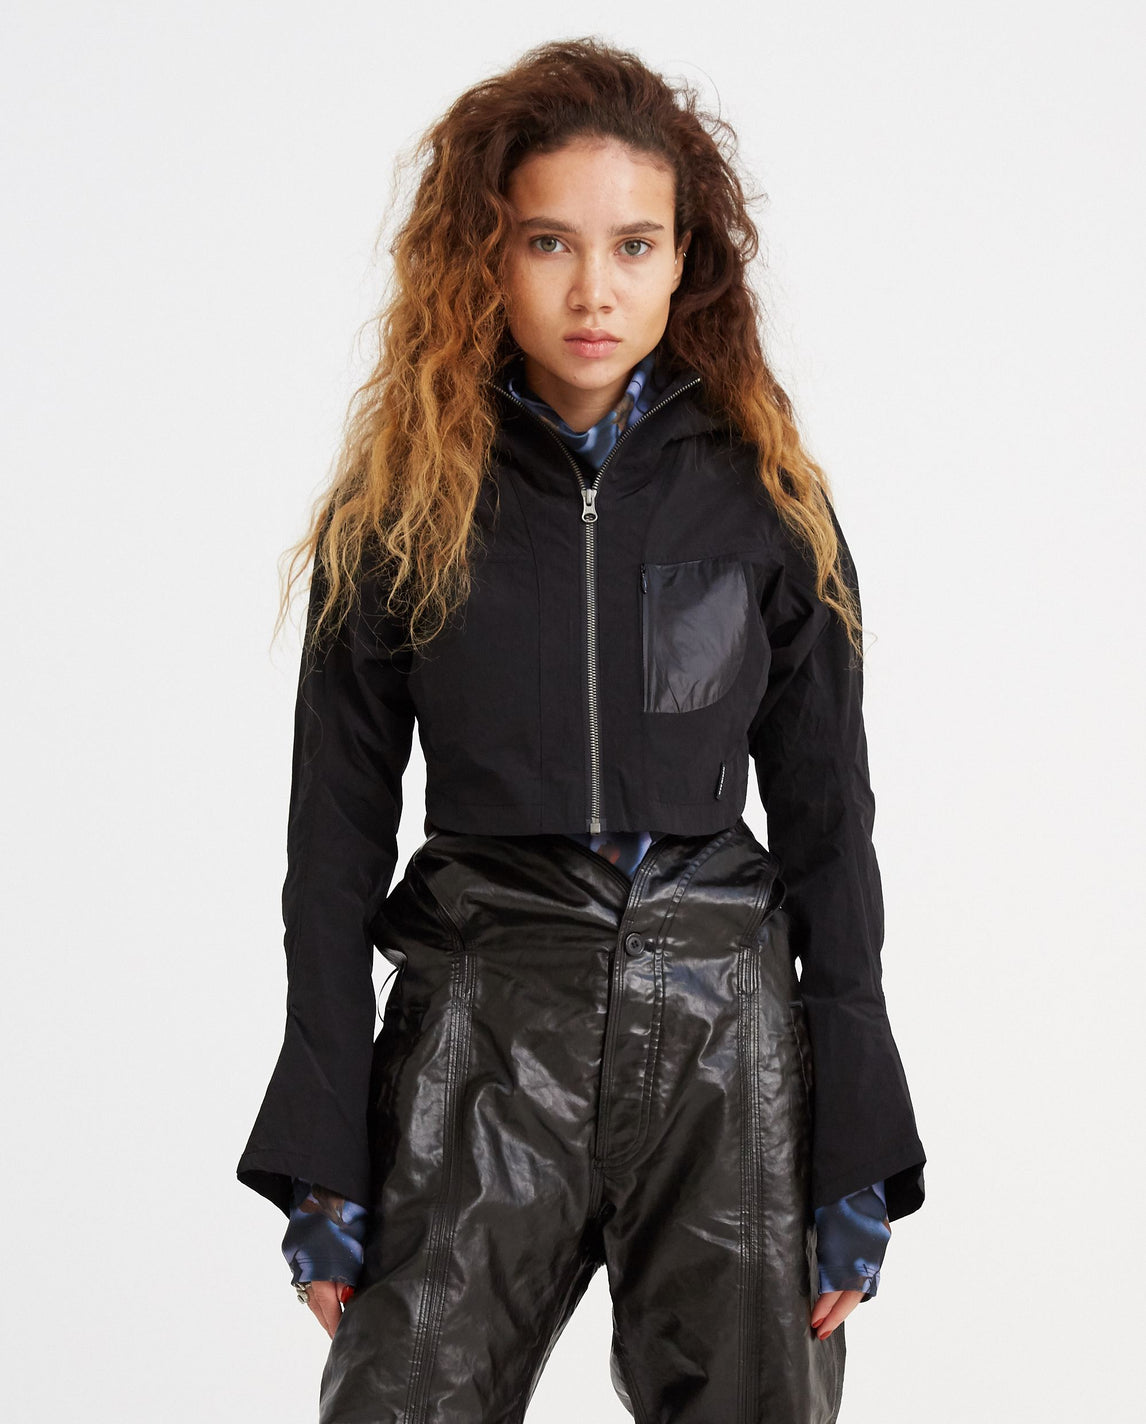 Cropped Windbreaker - Black WOMENS HYEIN SEO